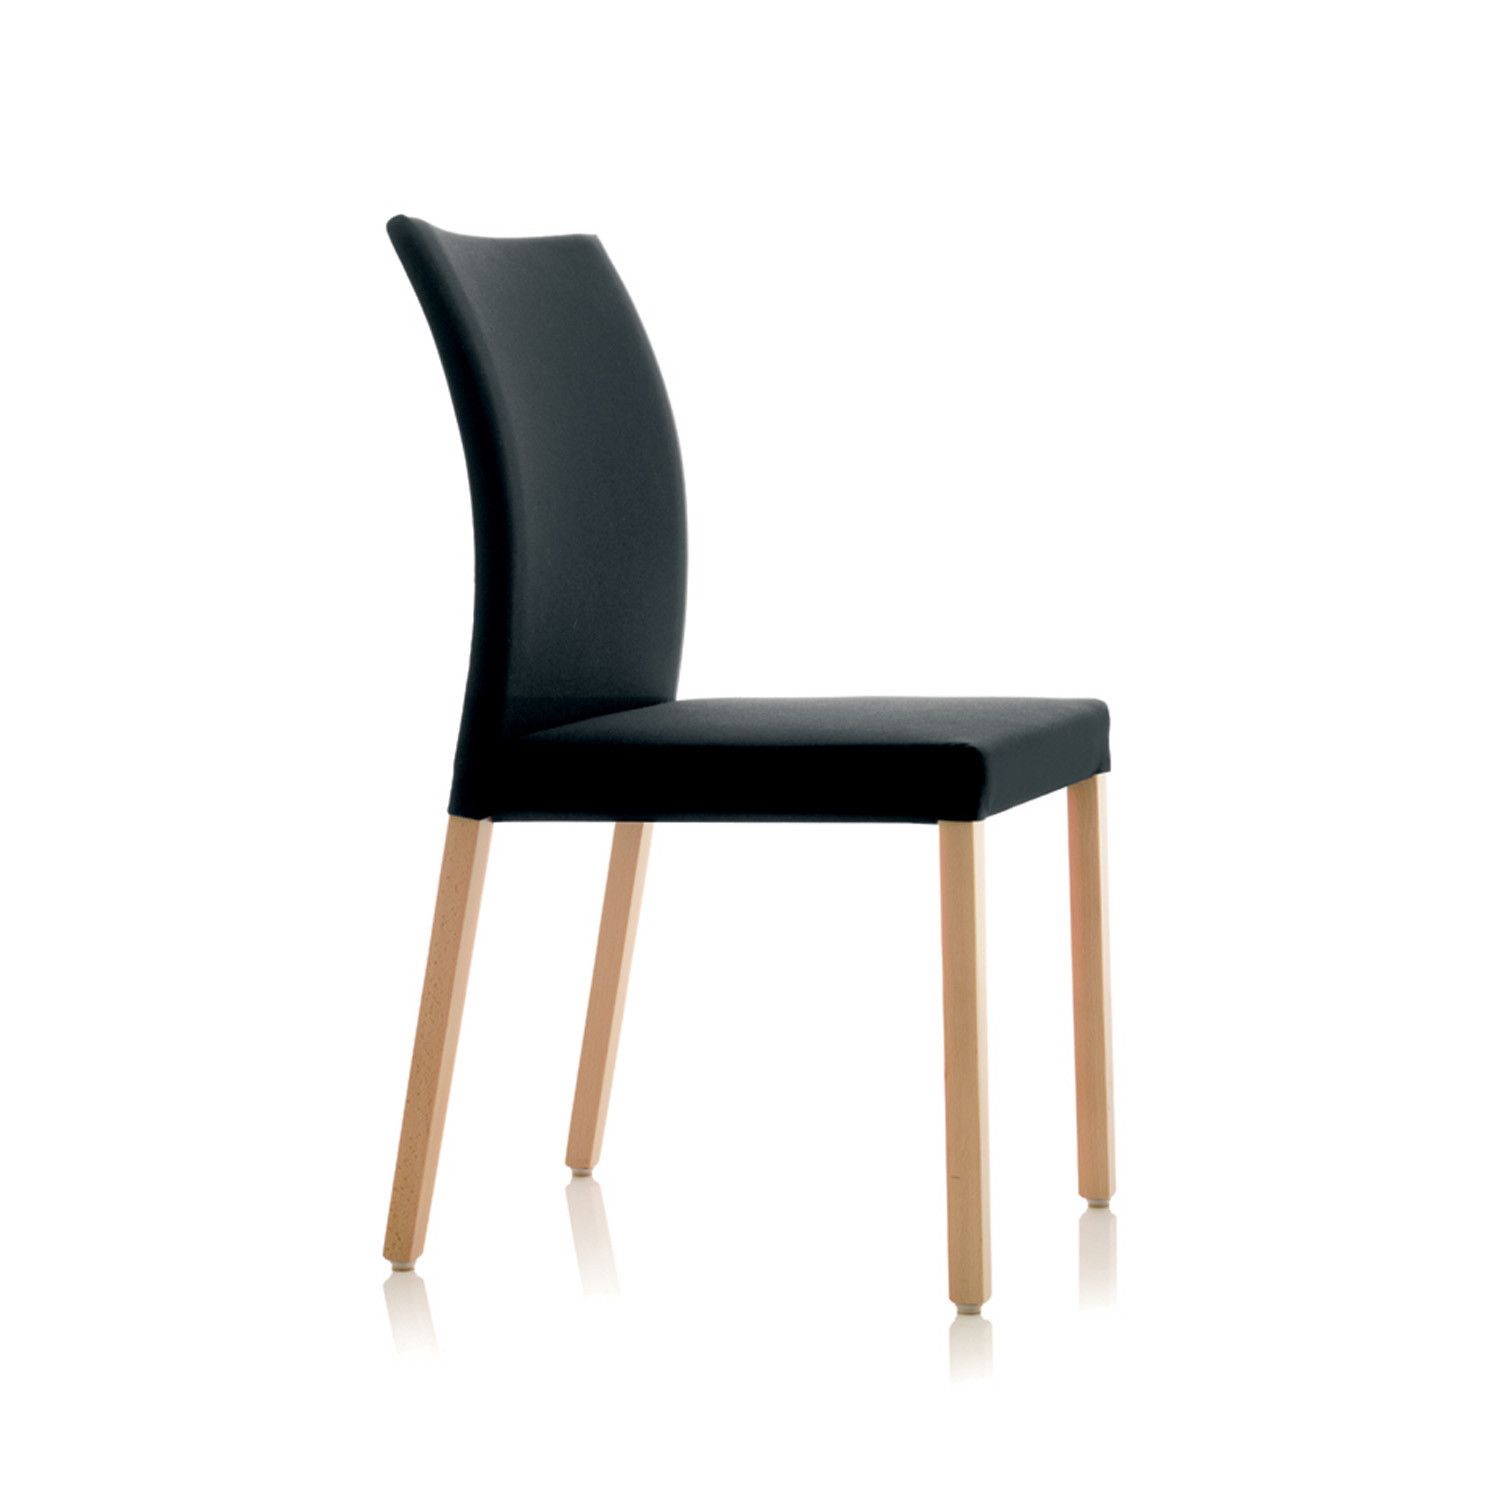 S15 Chair